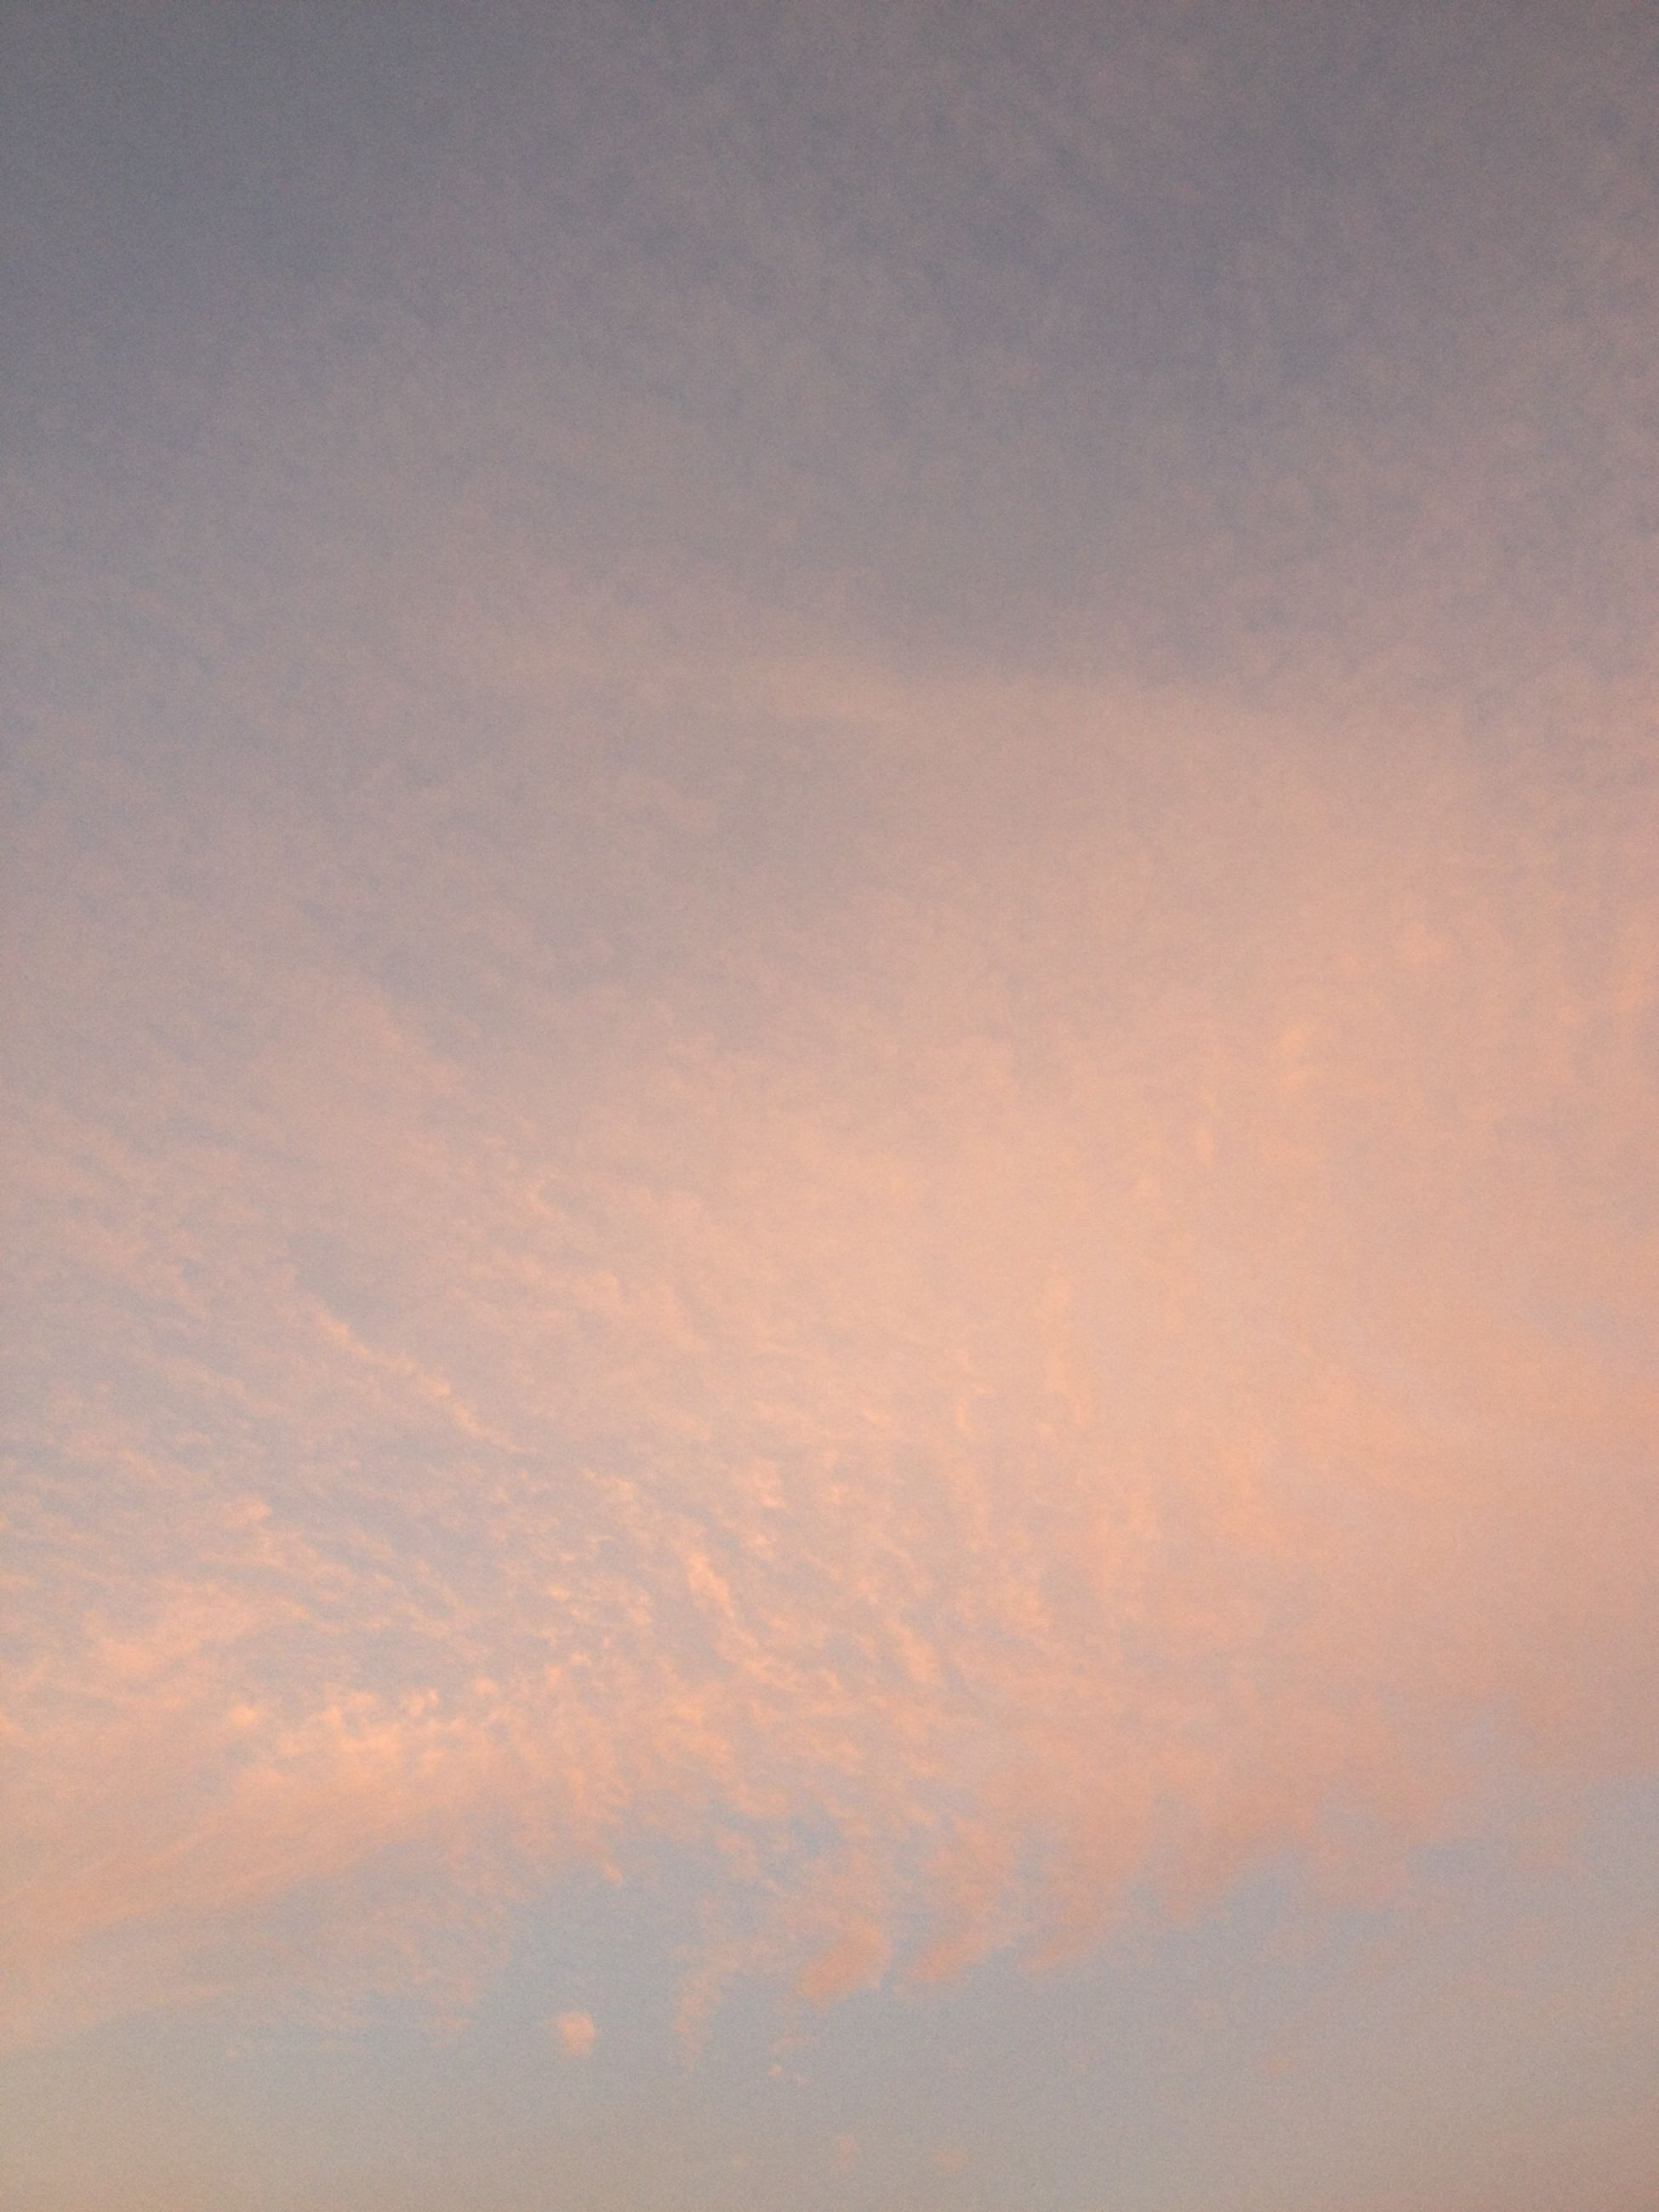 low angle view, sky, beauty in nature, cloud - sky, tranquility, scenics, backgrounds, sunset, nature, tranquil scene, full frame, cloudy, orange color, sky only, idyllic, outdoors, no people, cloud, weather, cloudscape